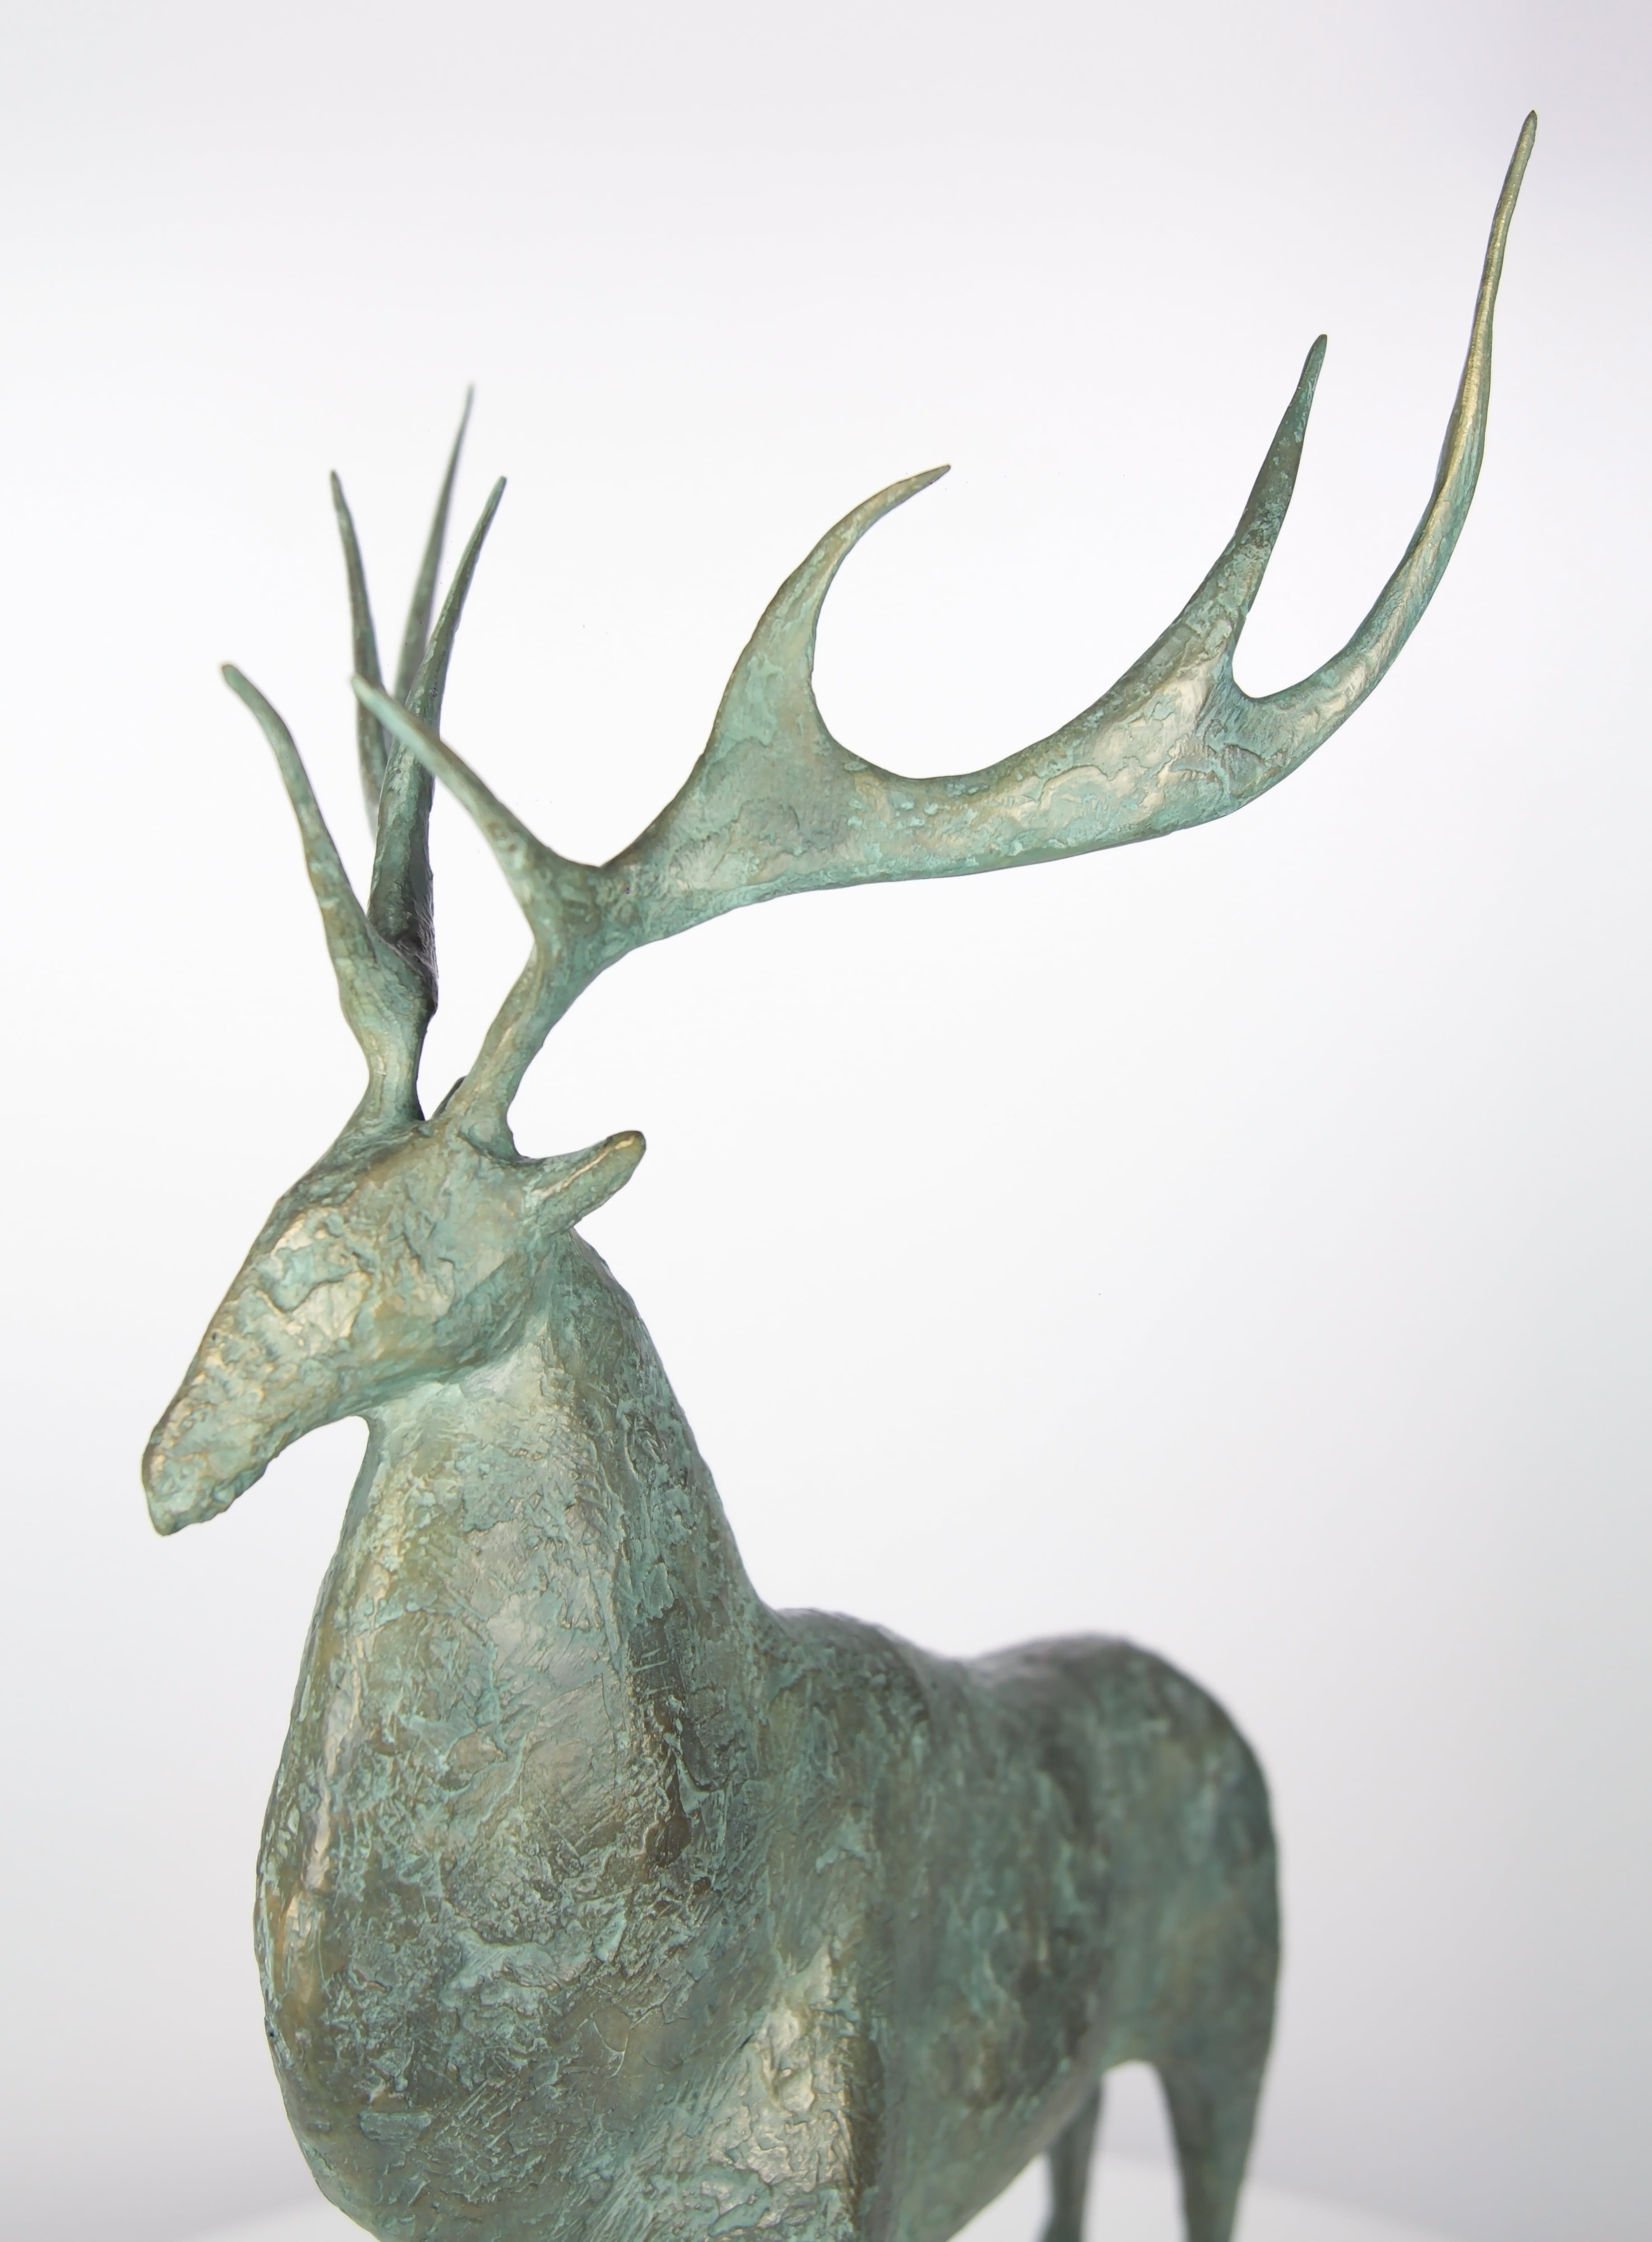 Cerf I,Pierre Yermia,Sculpture, detail 4